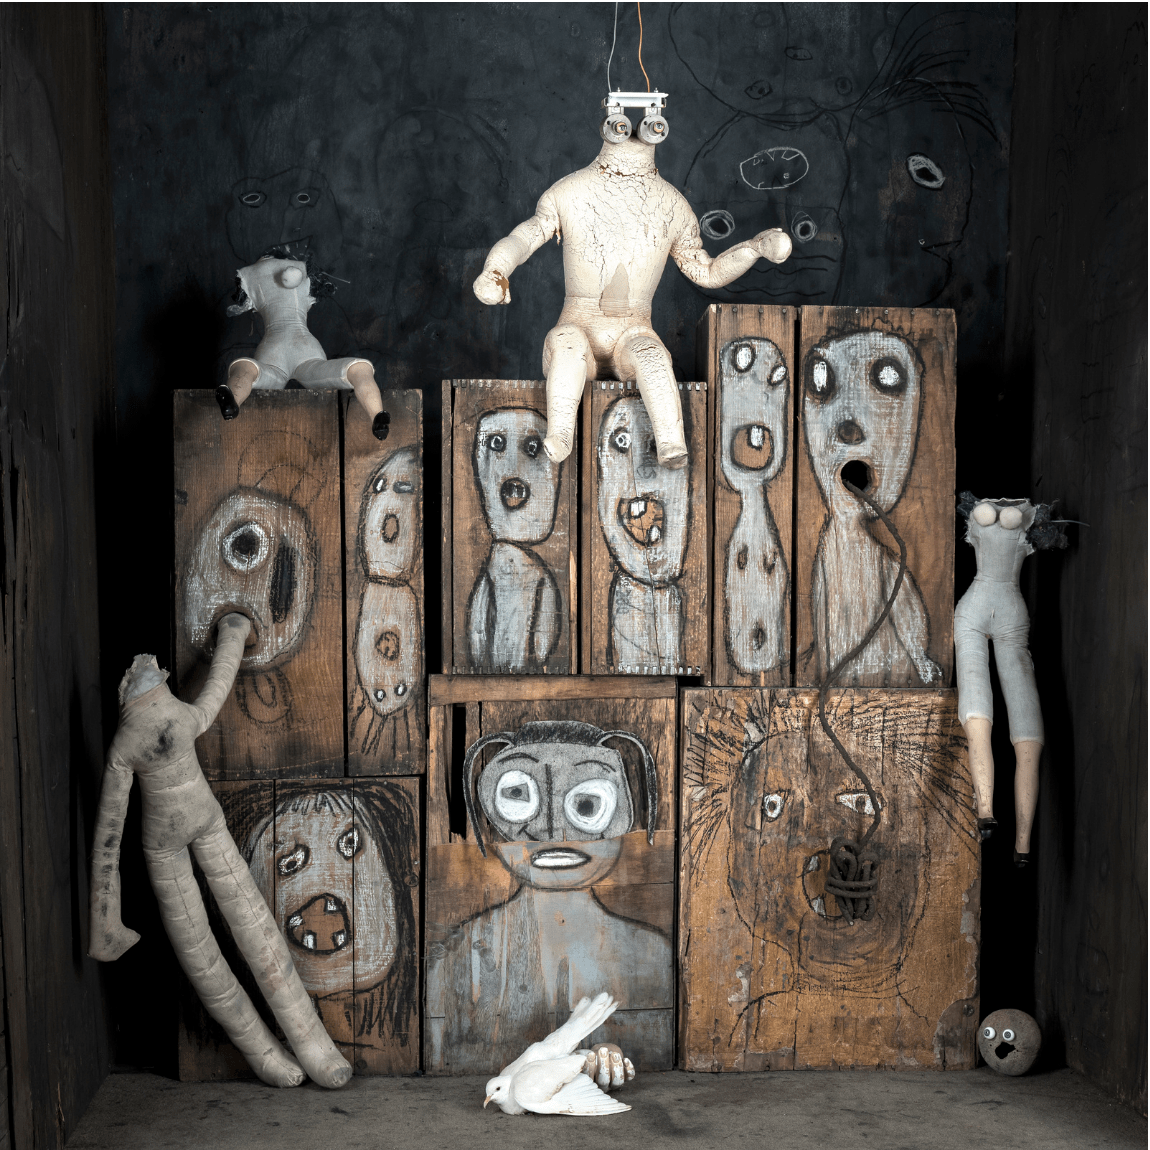 INTERVIEW: THE WORLD ACCORDING TO ROGER BALLEN